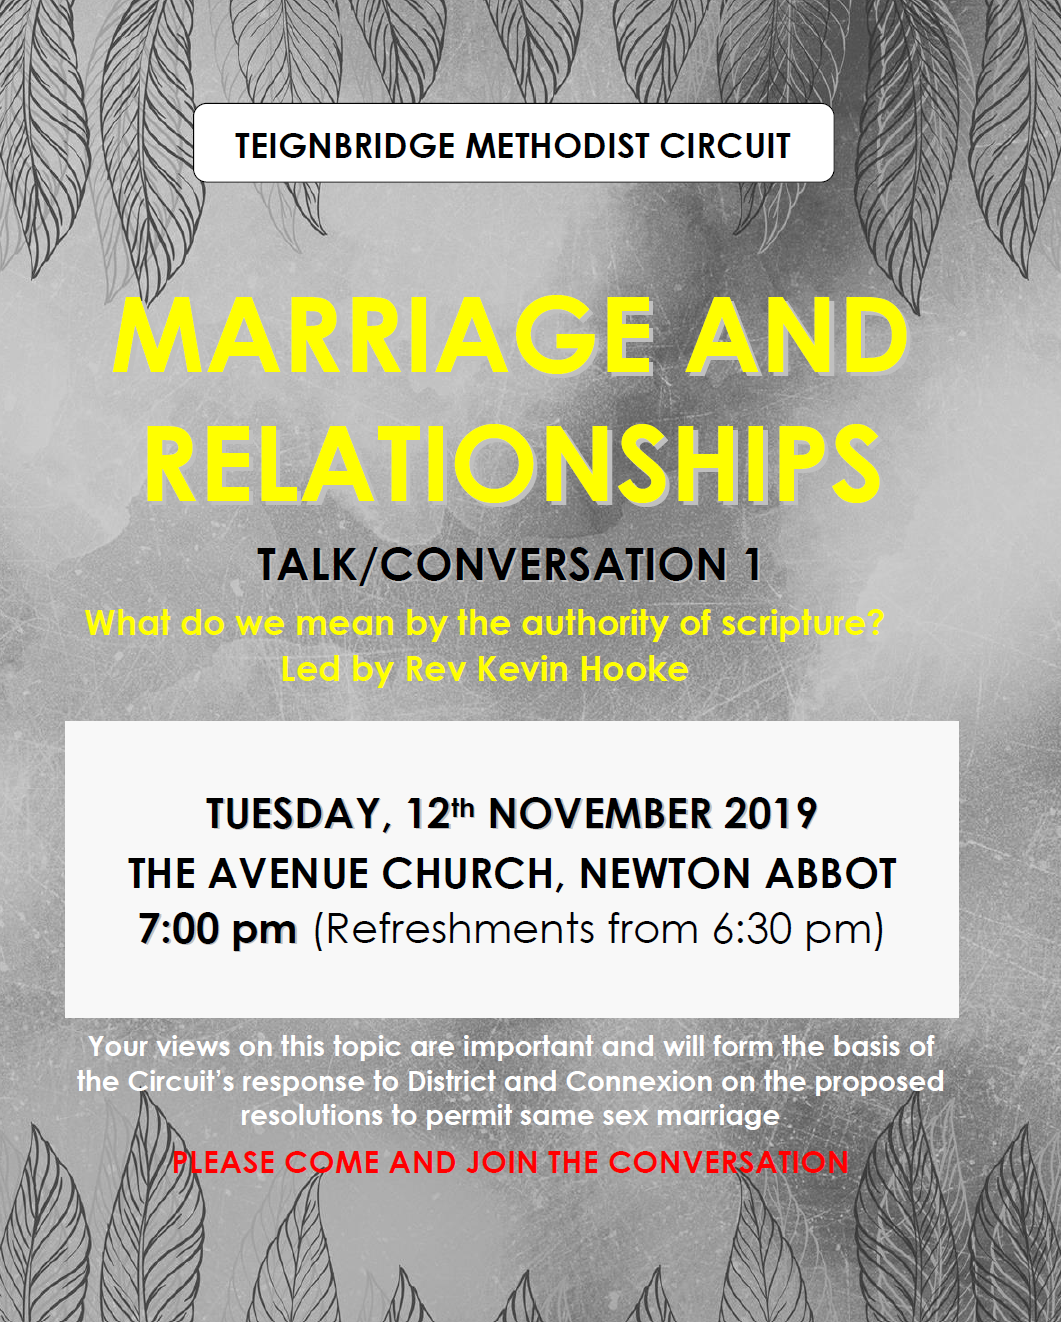 Marriage and Relationships 1 @ The Avenue Church, Newton Abot